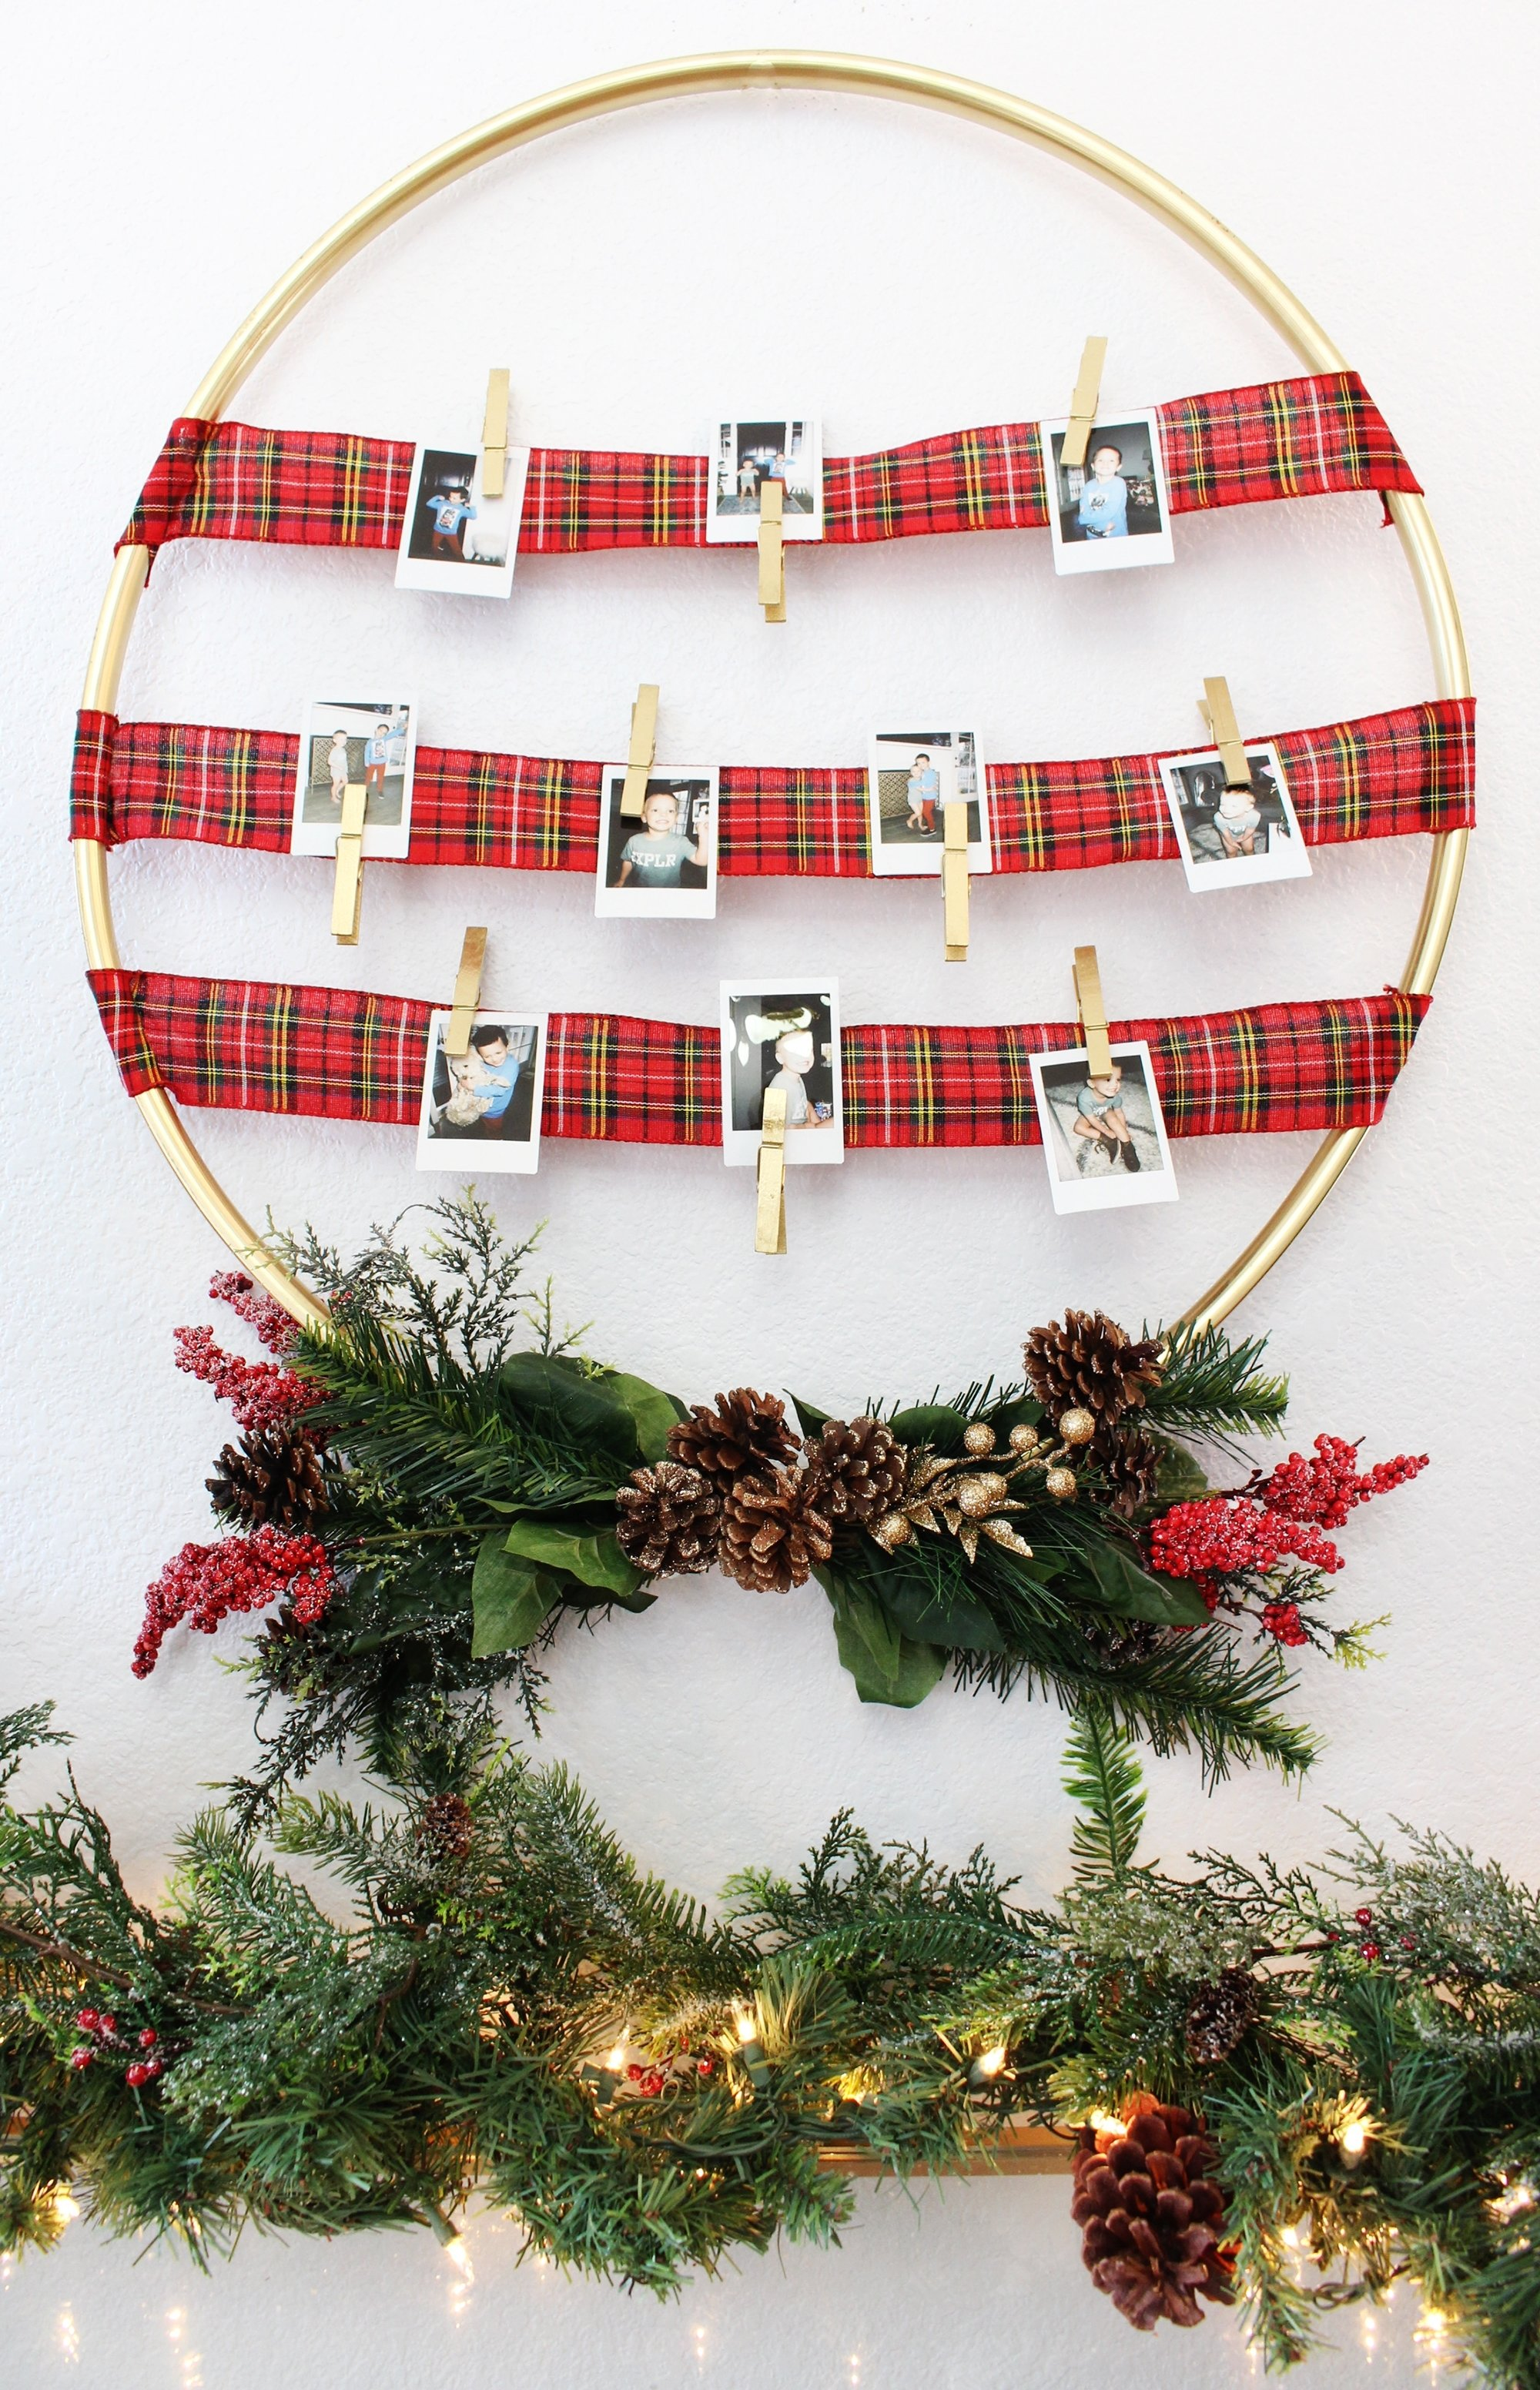 10 Ideal Christmas Gift Ideas For Inlaws gift idea diy photo display hoop classy clutter 2020